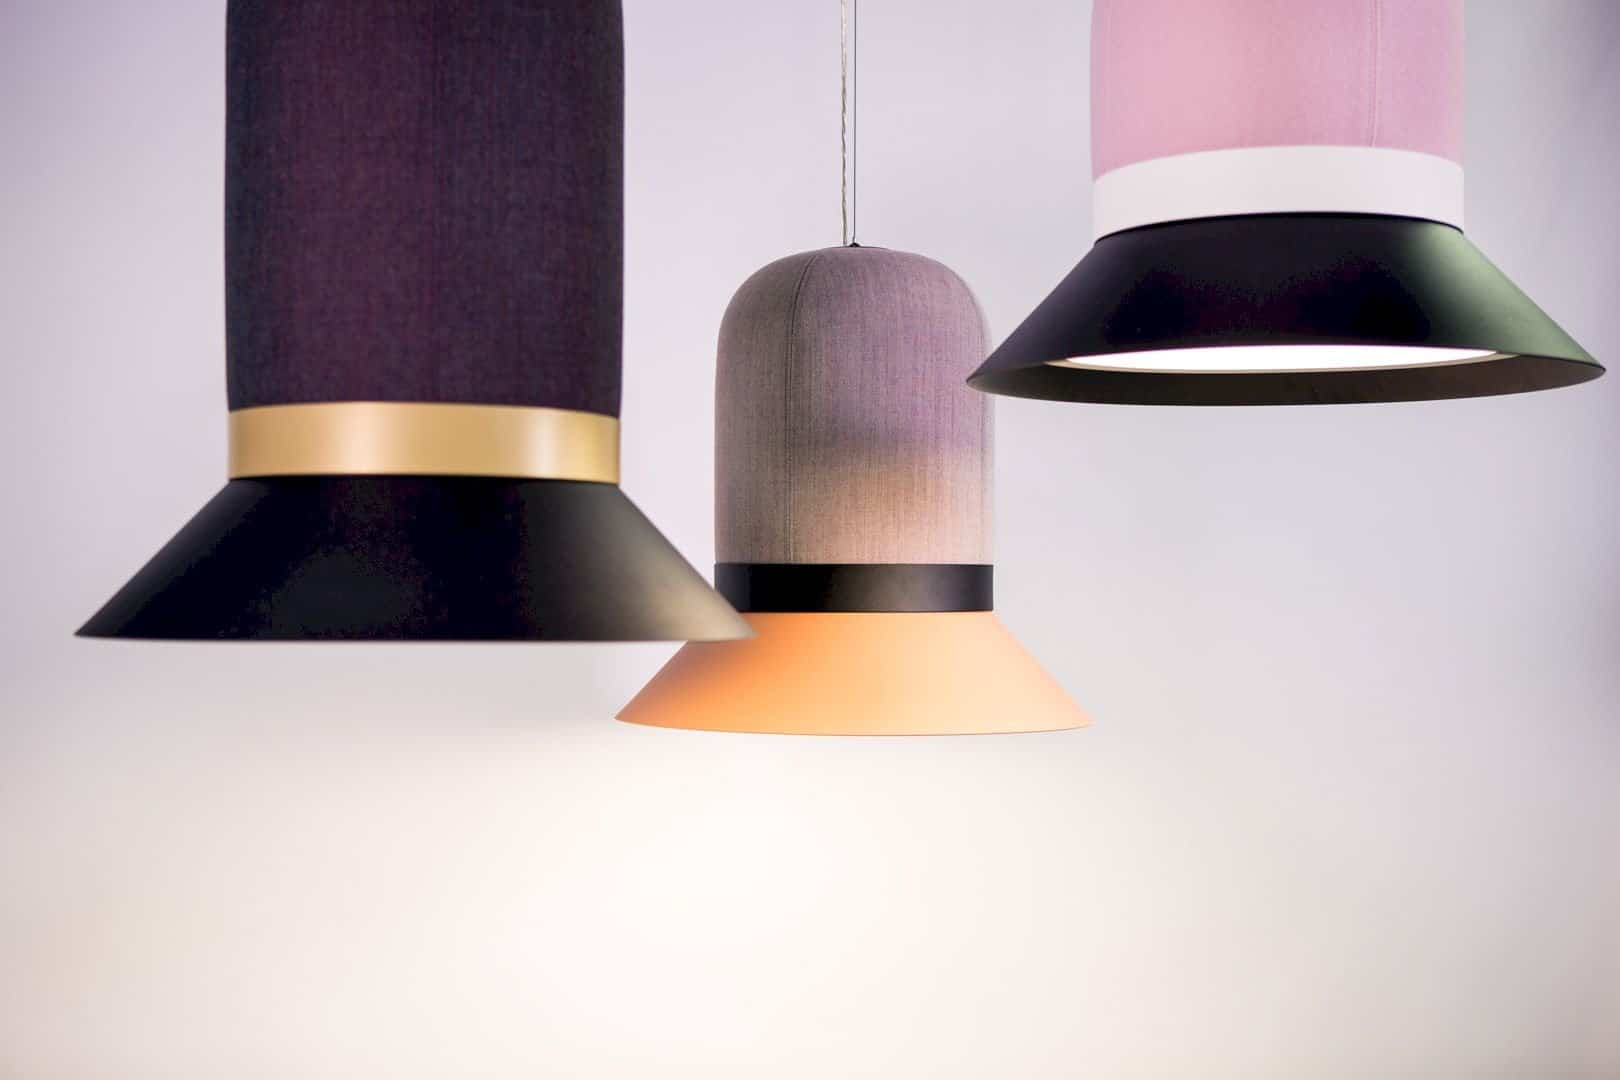 BuzziHat: A Decorative and Unique Hat-Shaped Pendant Light